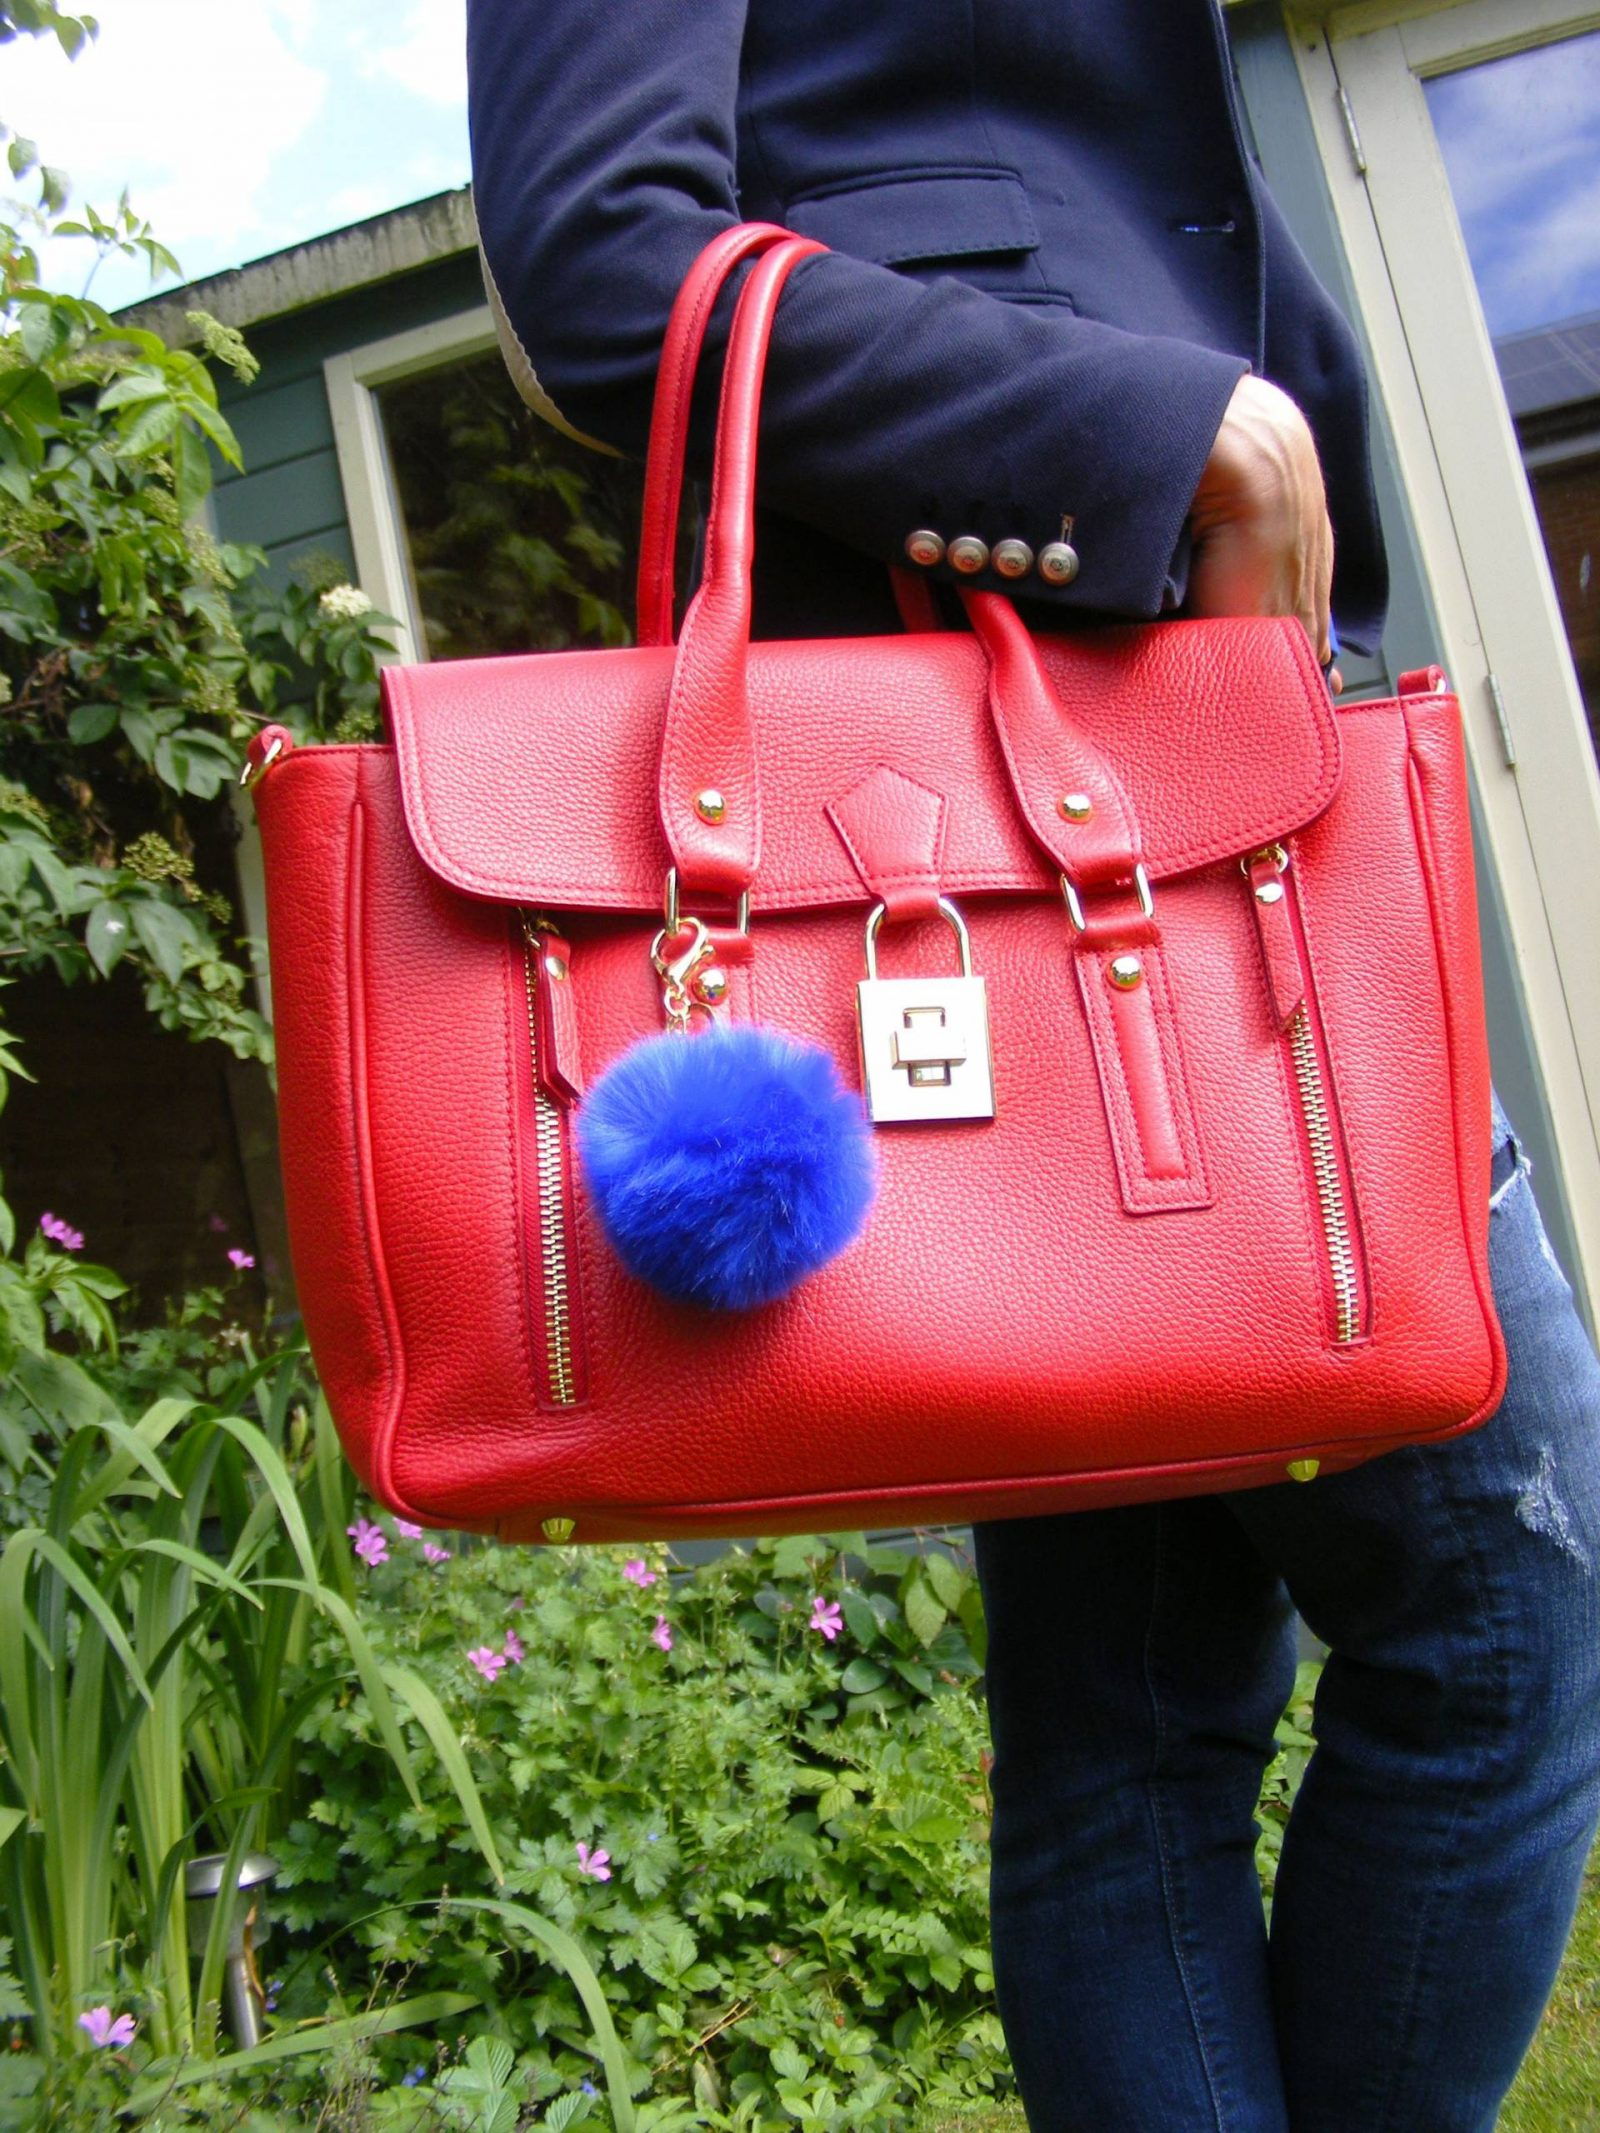 Shades of Blue with a Pop of Red Mila Blu red leather bag